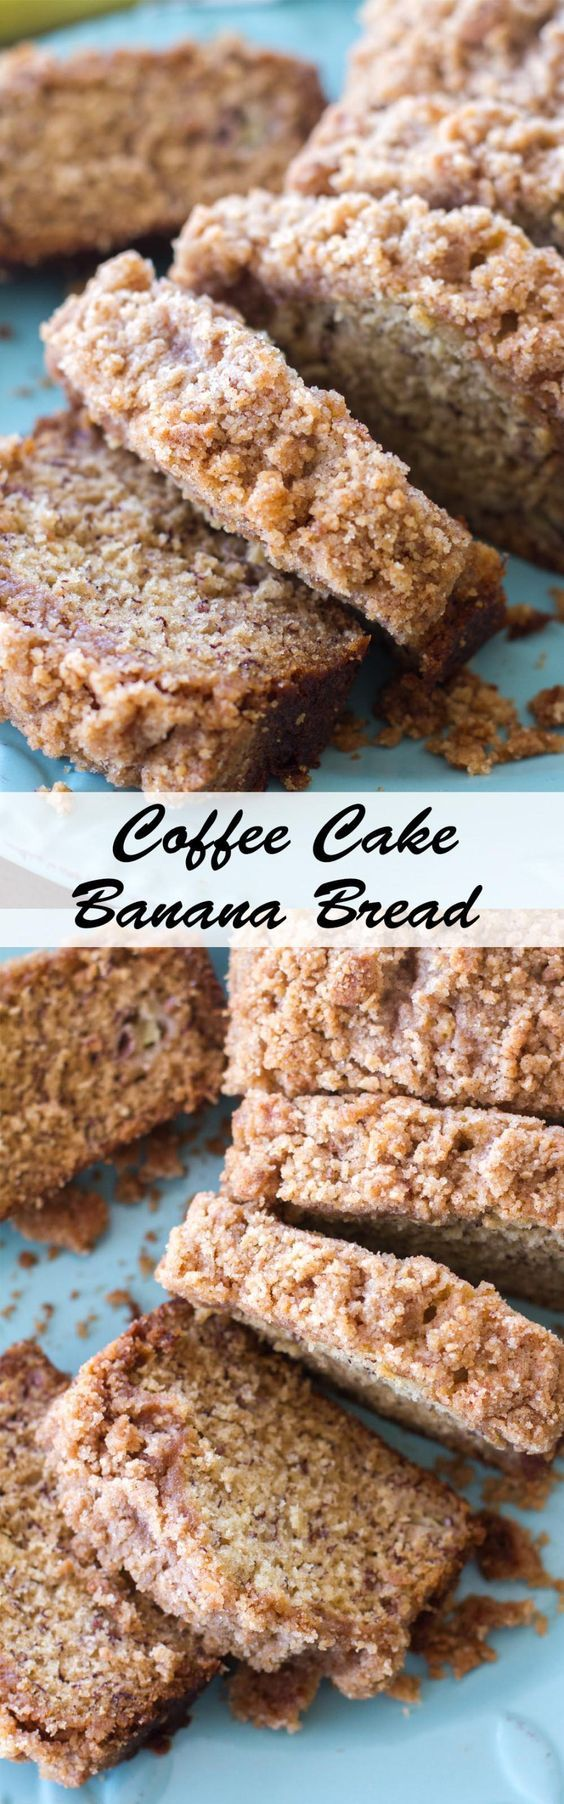 Coffee Cake Banana Bread - This classic banana bread recipe is topped with a sweet crumb topping making it a cross between a quick bread and coffee cake!